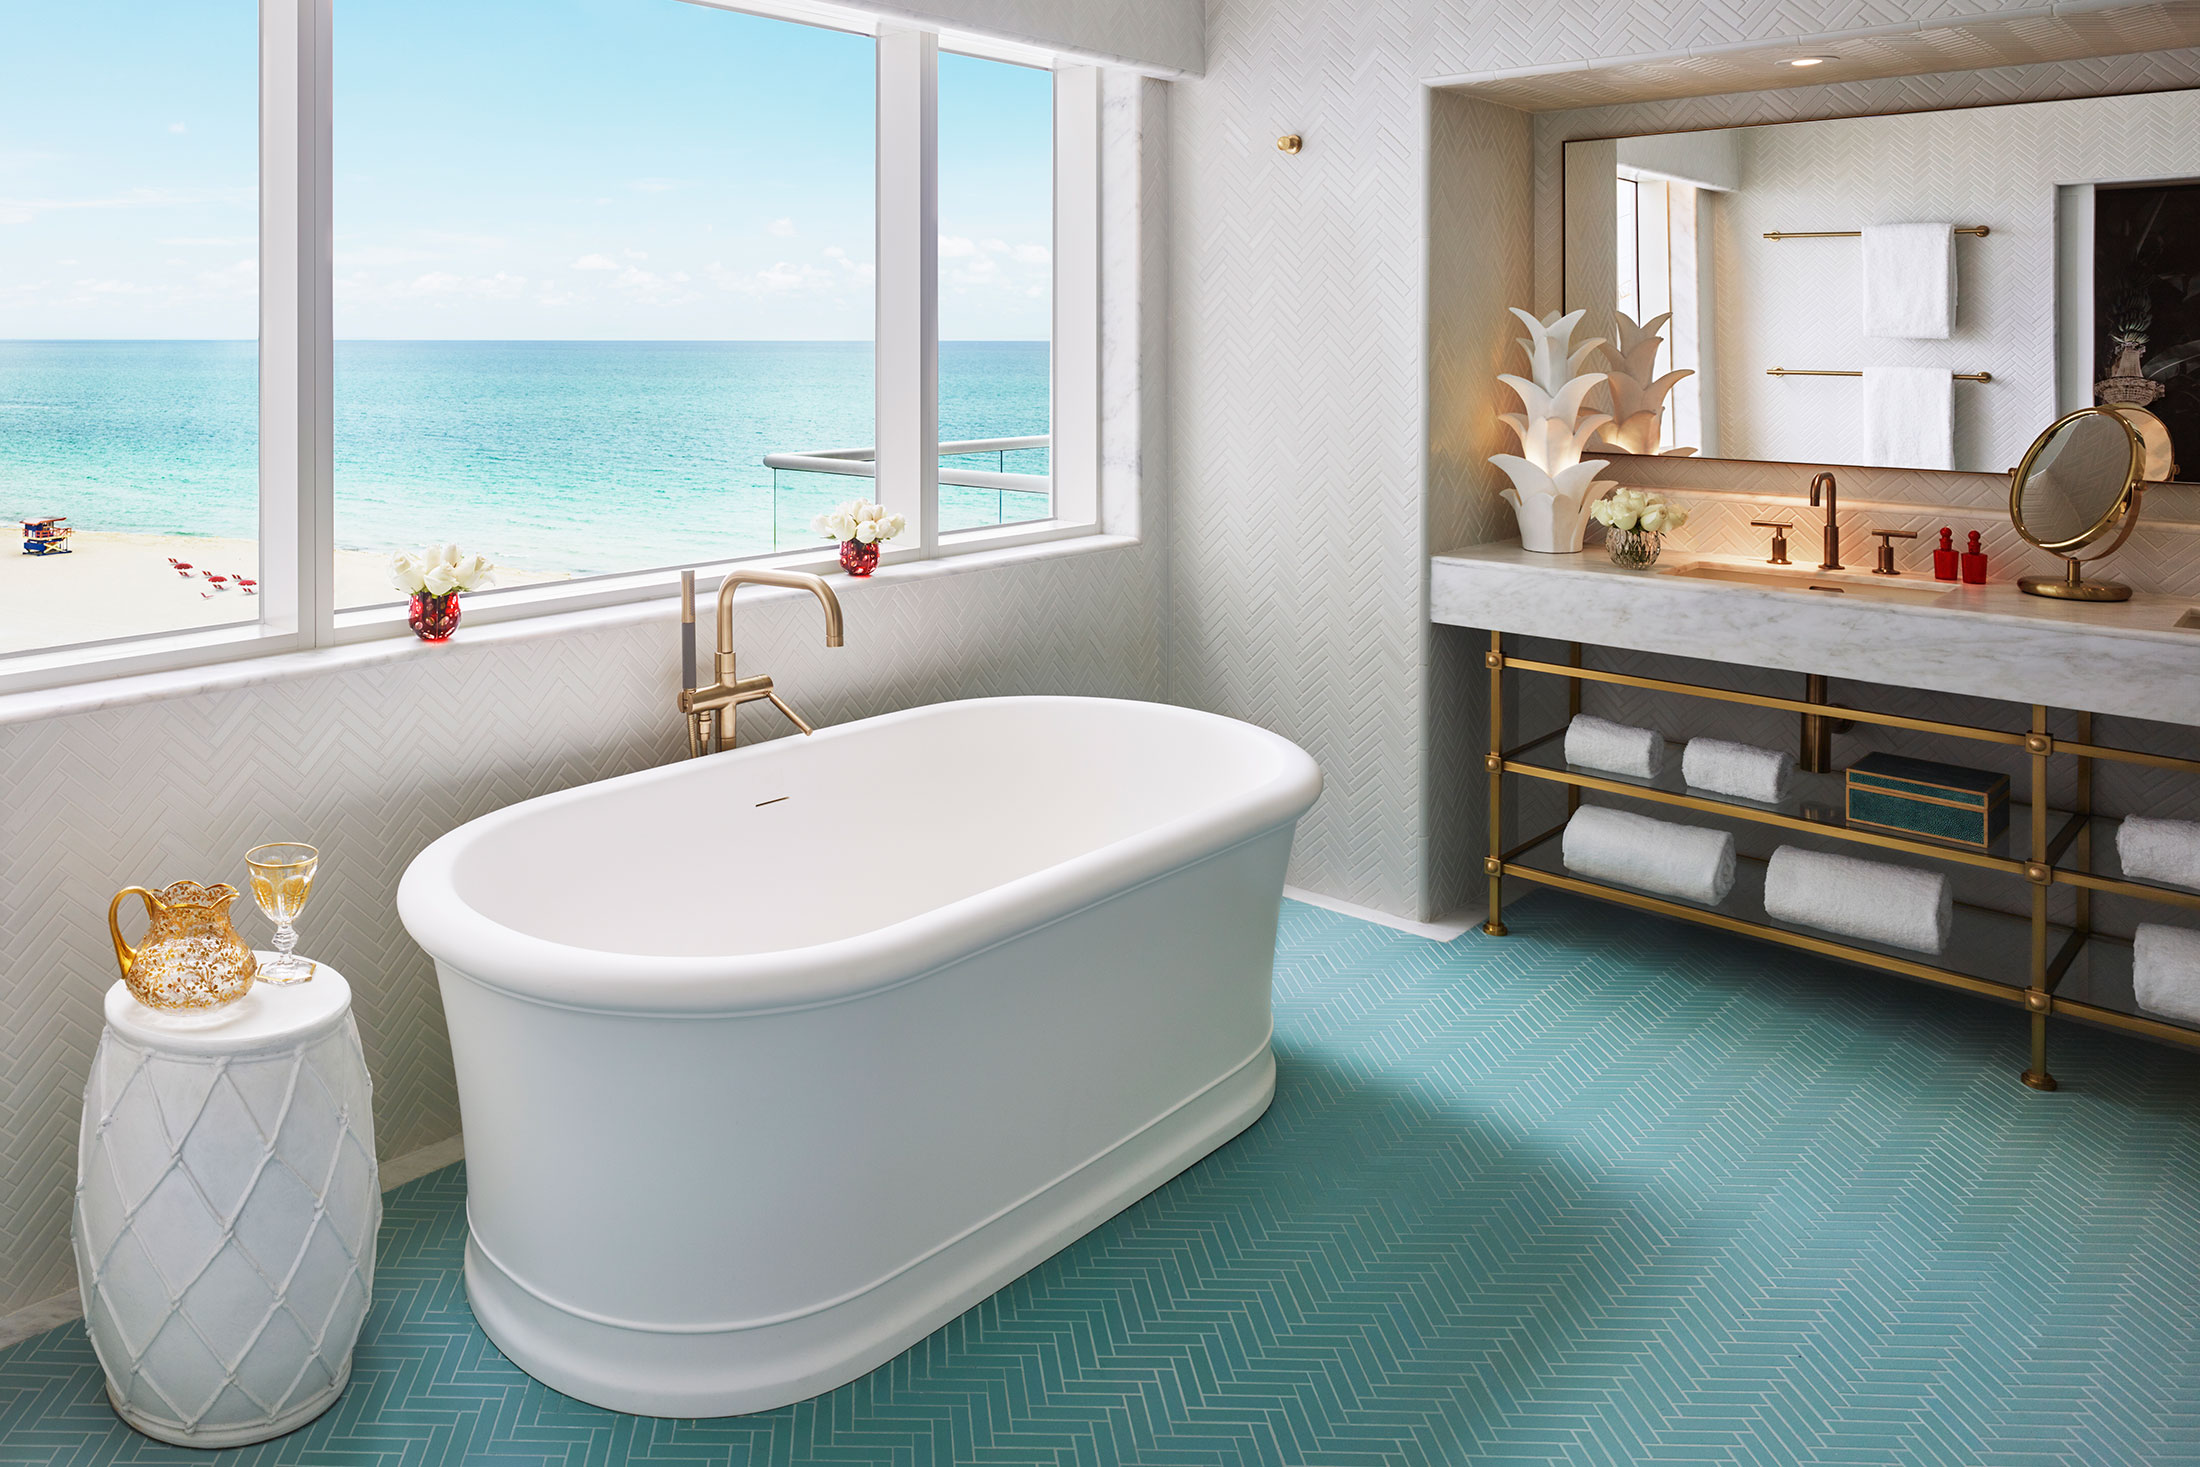 A turquoise-tiled bathroom with a view. (Photo: Courtesy Faena Hotel Miami Beach)